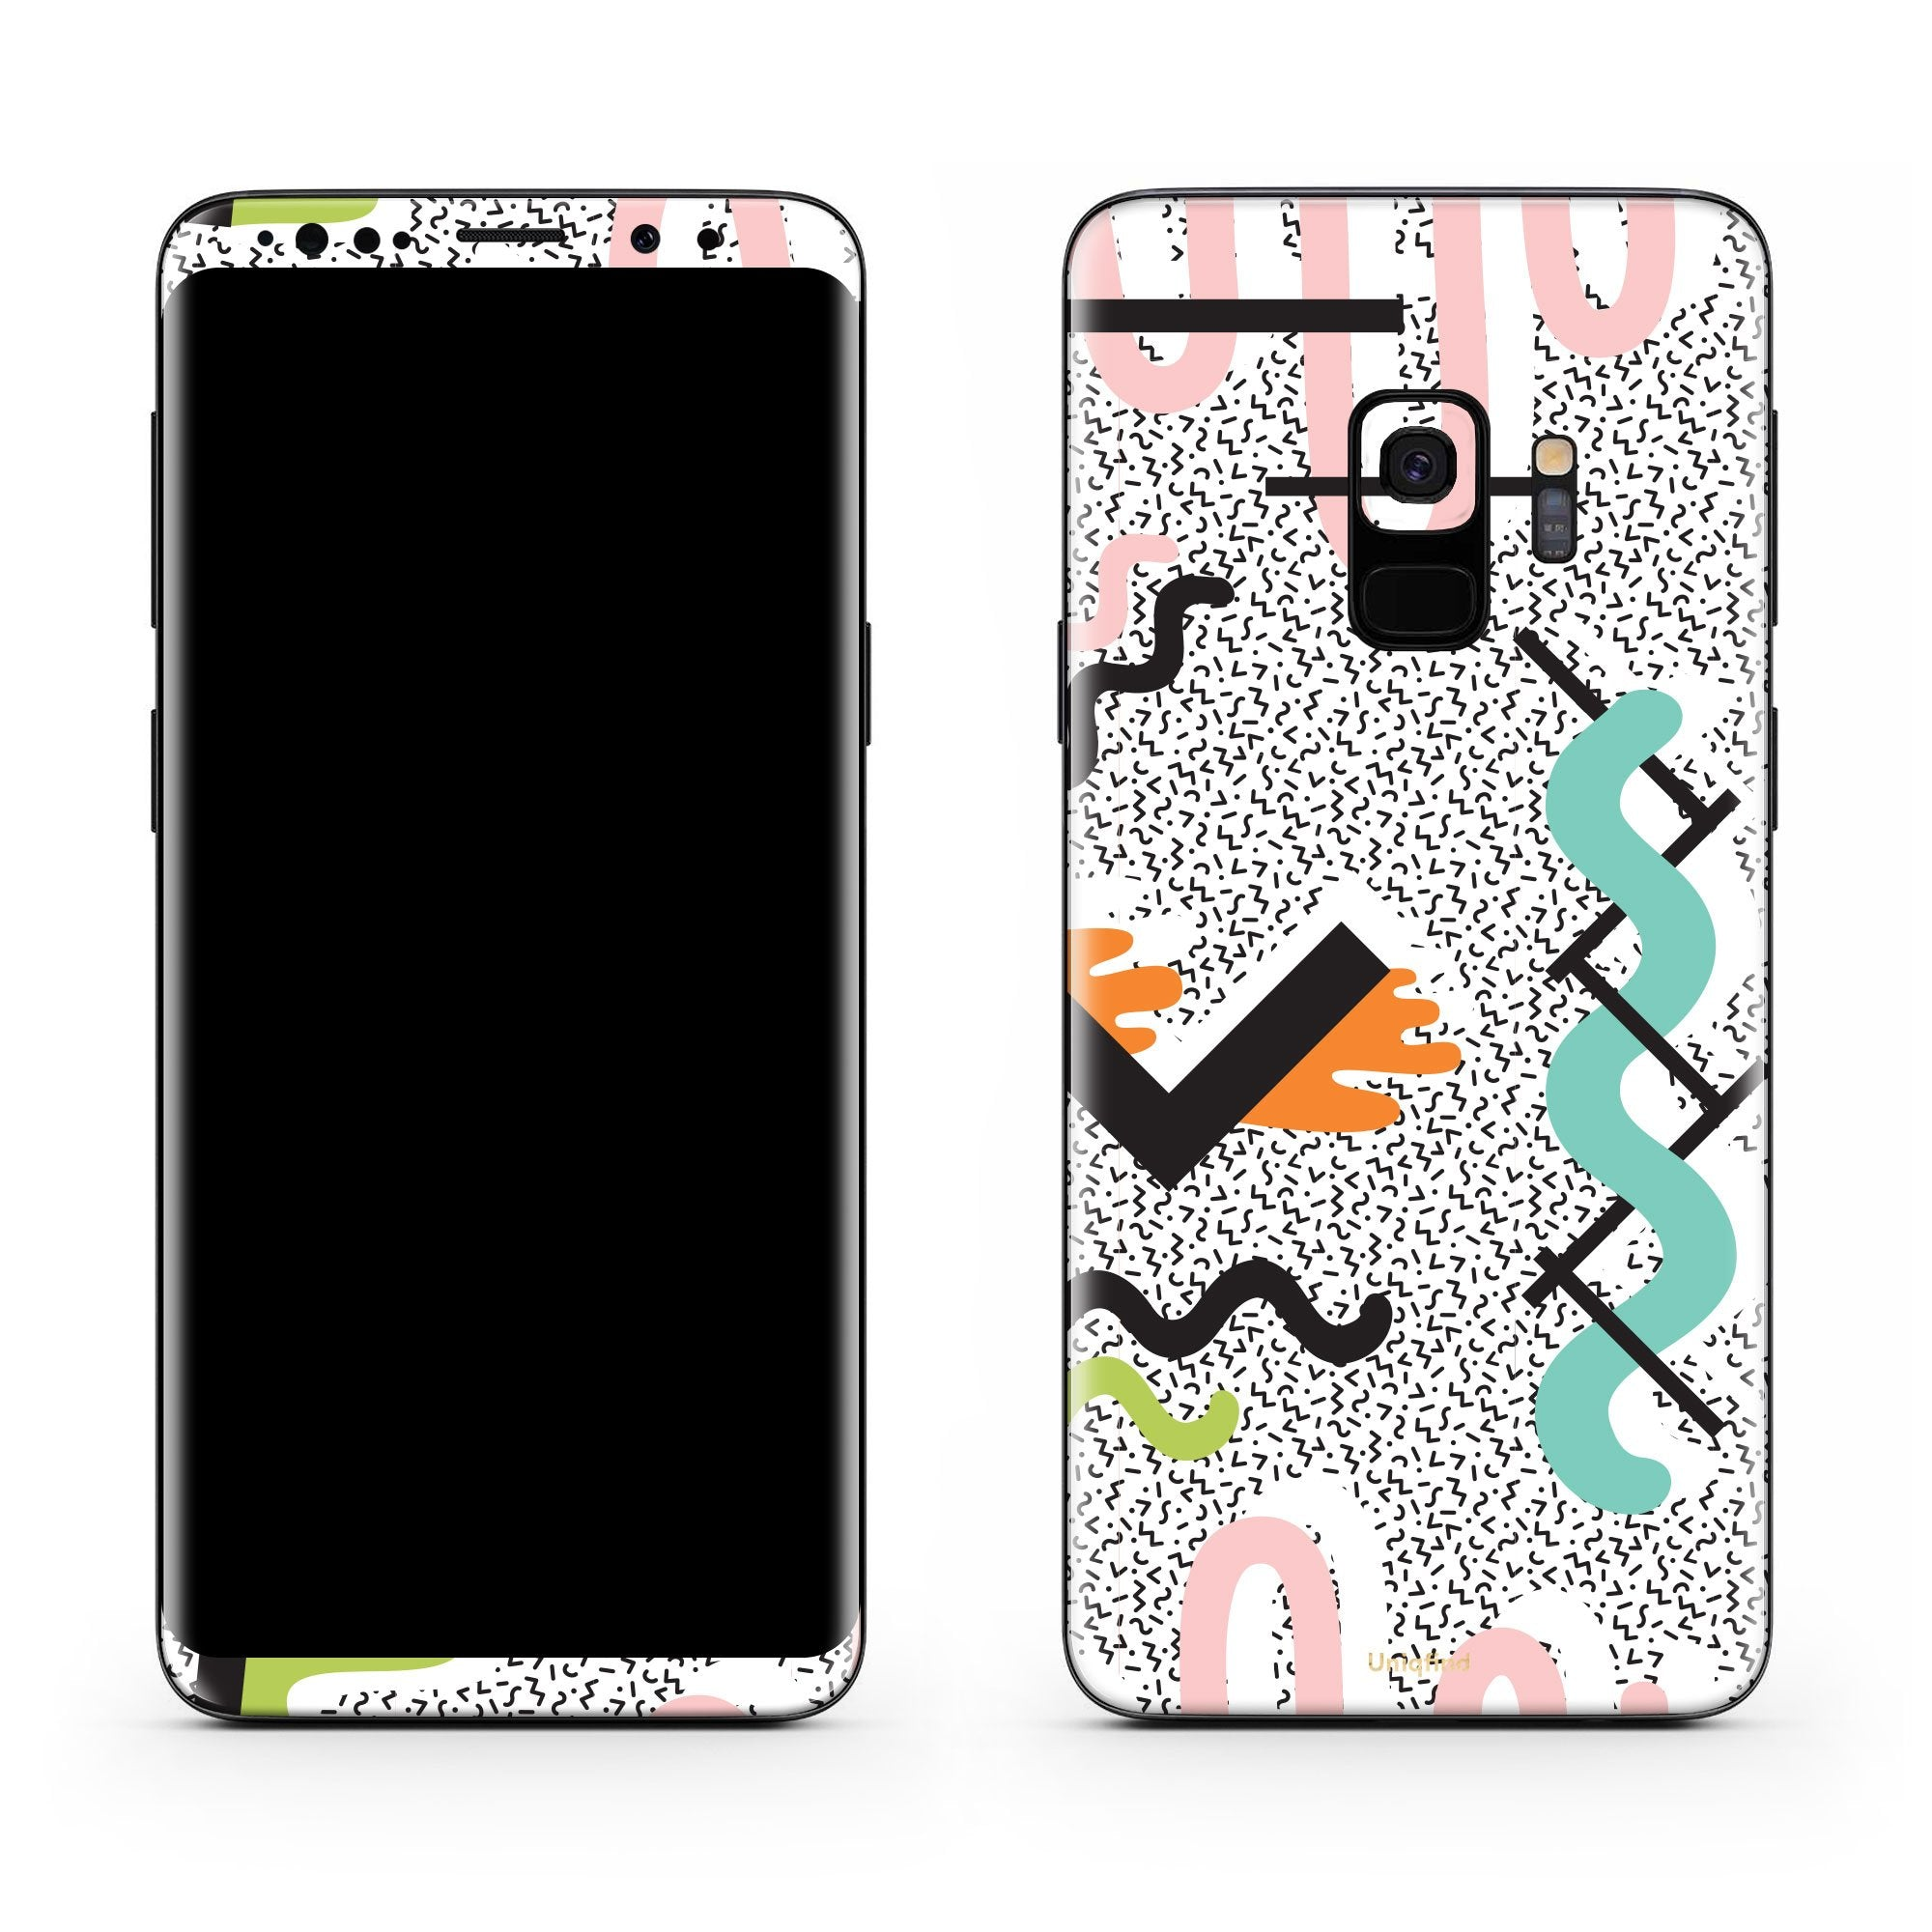 True Memphis Galaxy S9 Plus Skin + Case